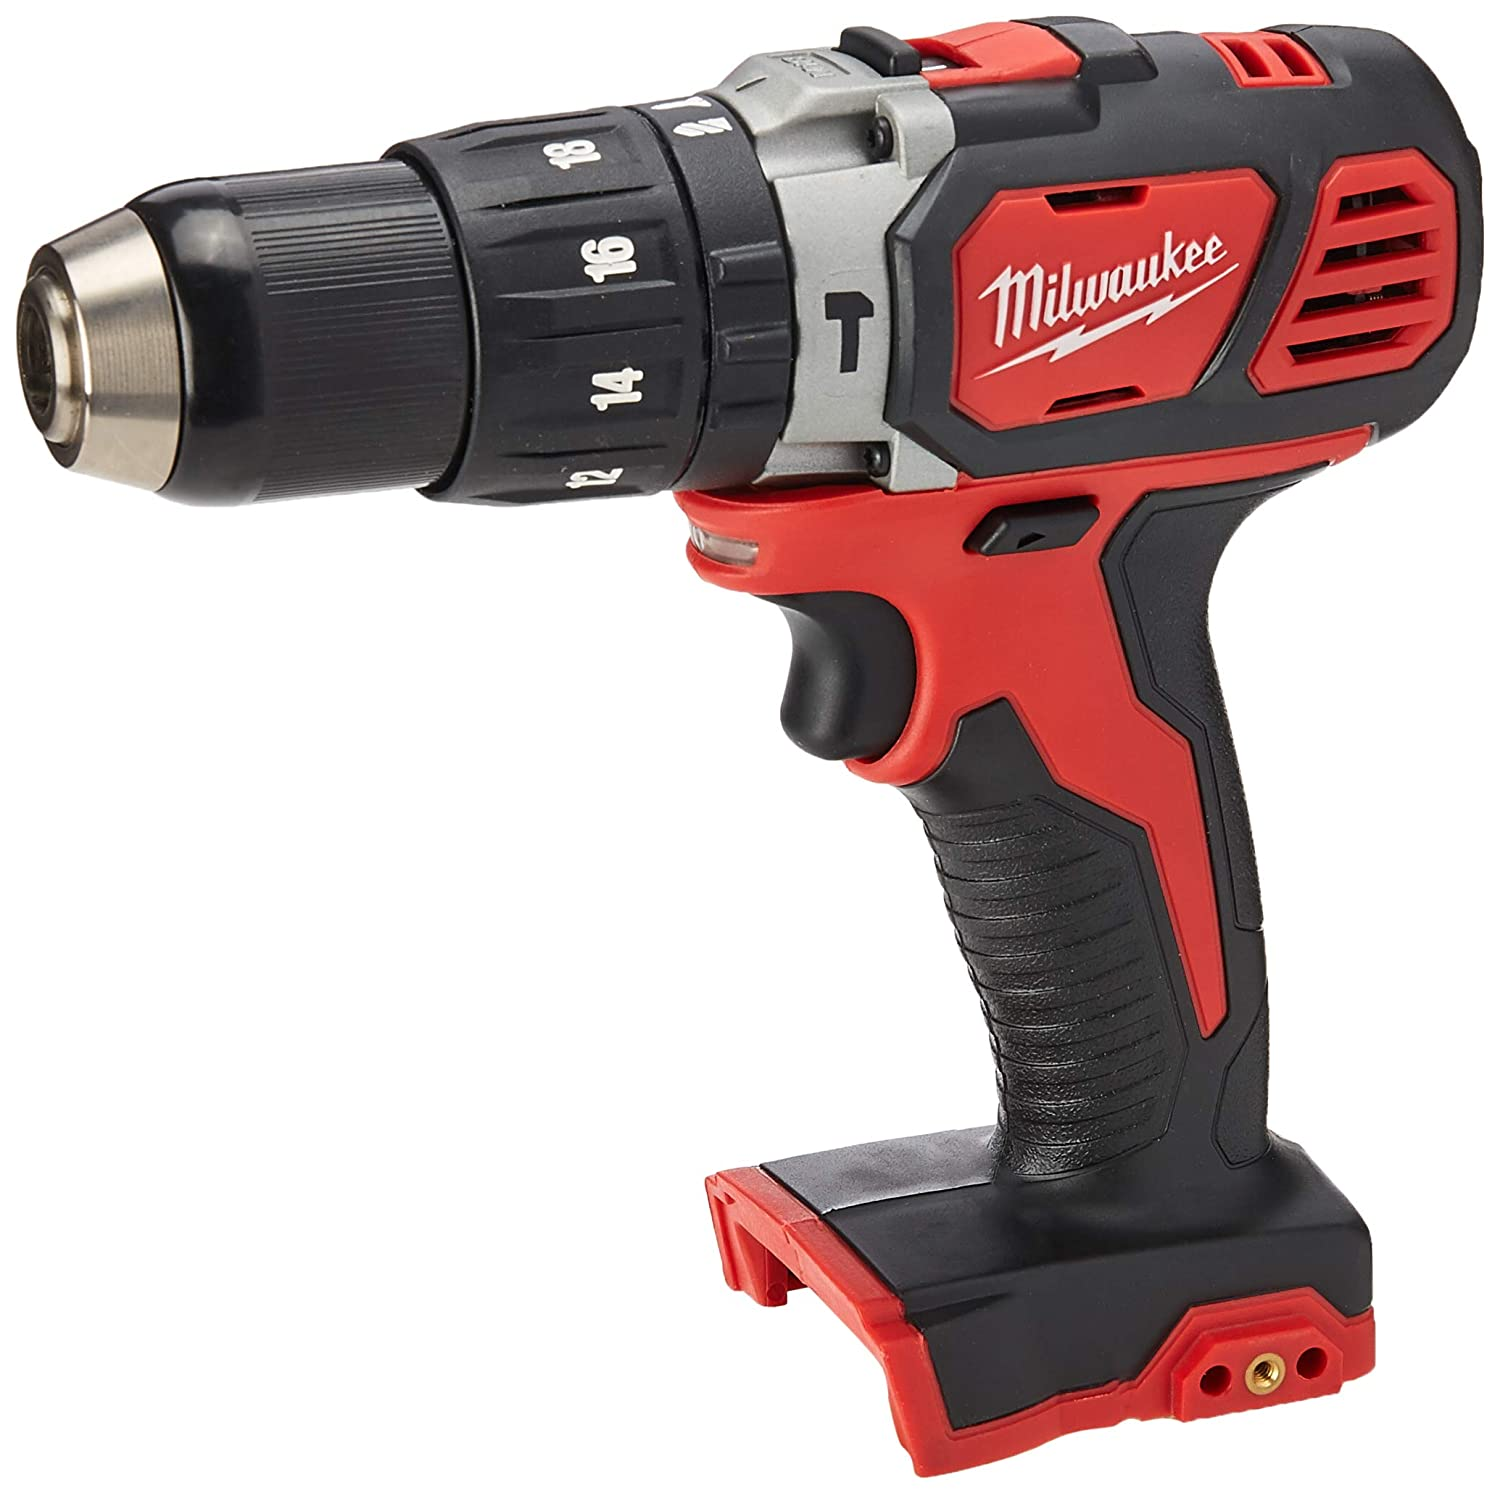 Milwaukee 2607-20 1/2 Inch 1,800 RPM 18V Lithium Ion Cordless Compact Hammer Drill / Driver with Textured Grip, All Metal Gear Case, and LED Lighting